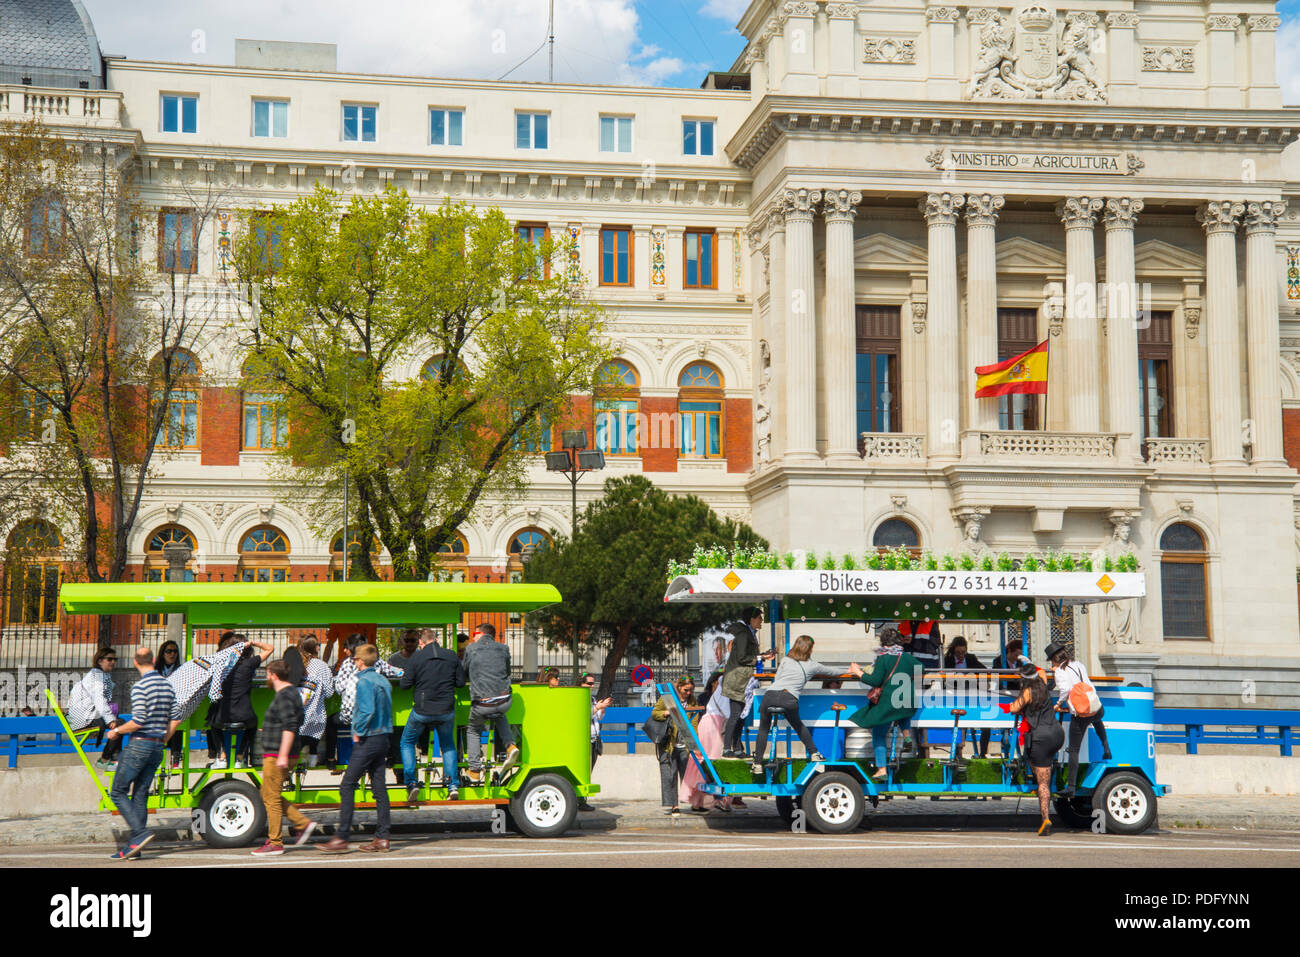 Two bike bars. Atocha street, Madrid, Spain. - Stock Image